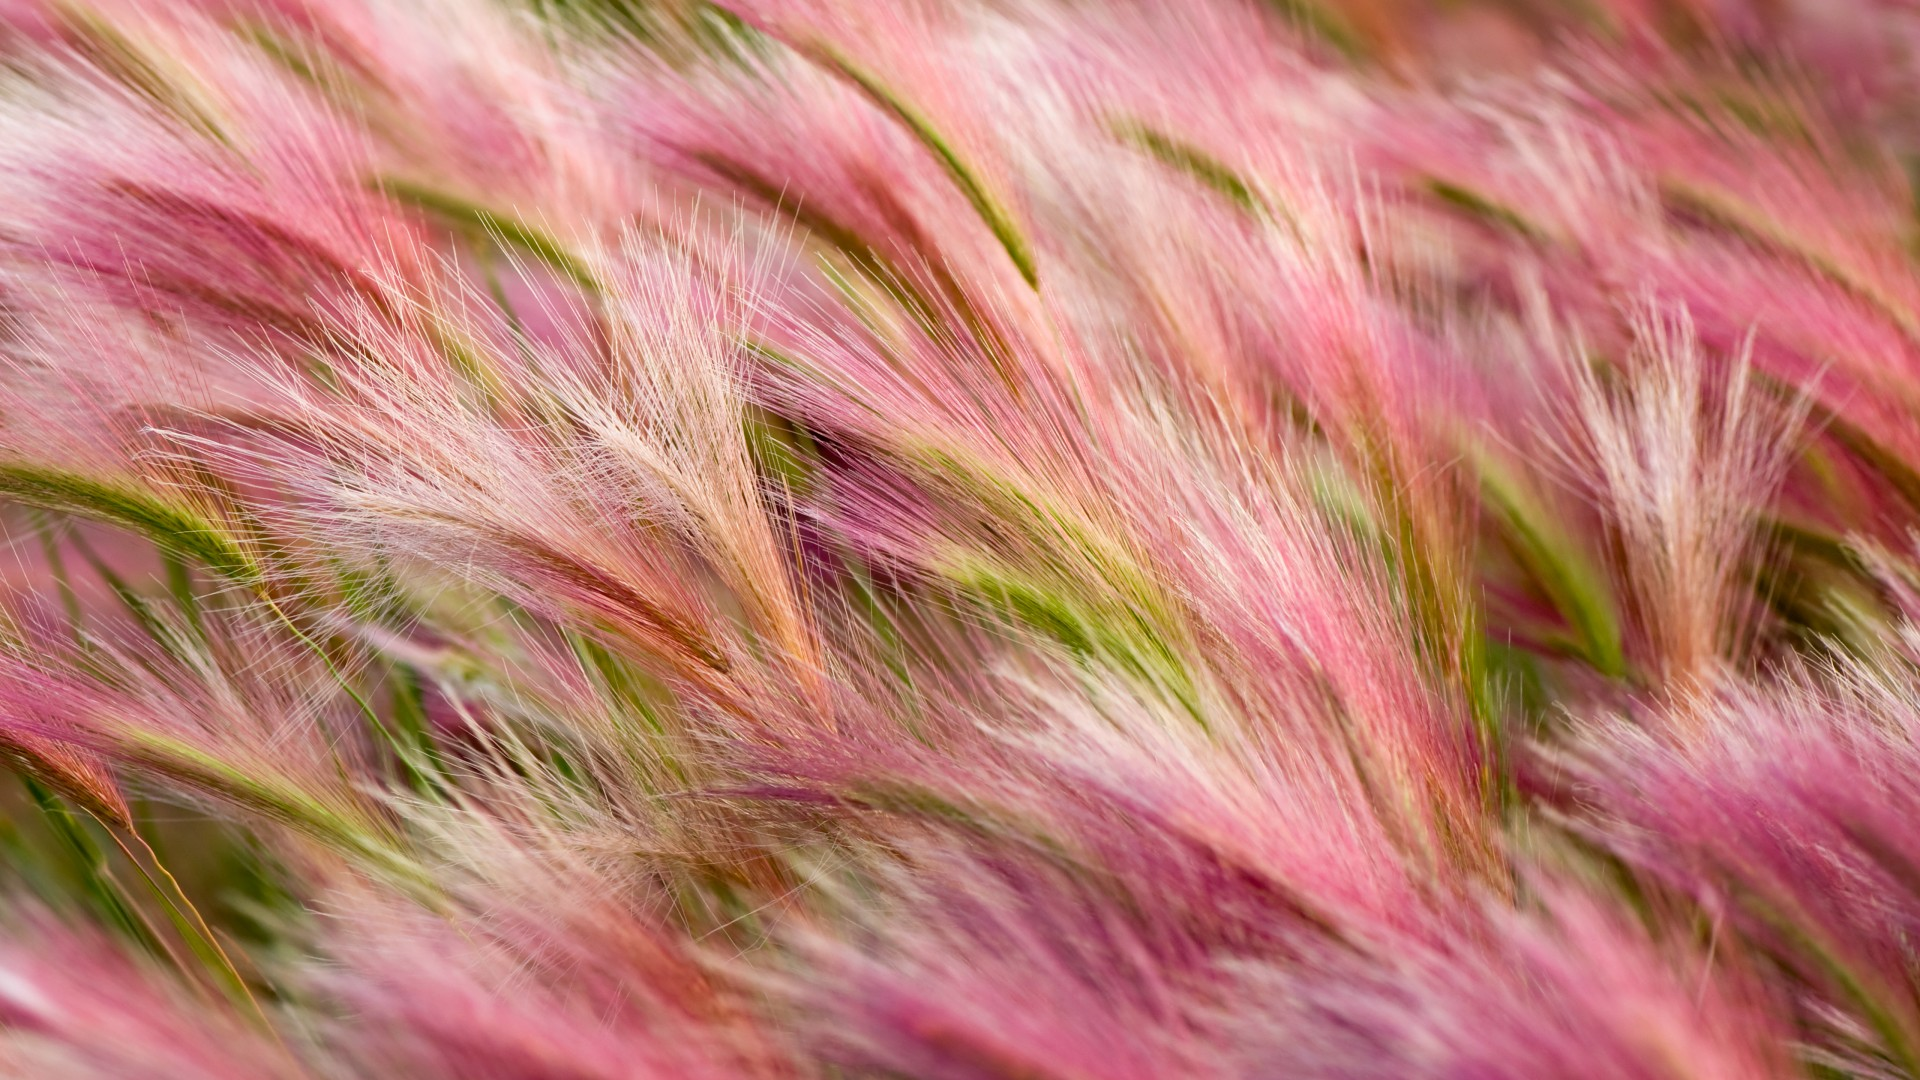 ears, 5k, 4k wallpaper, 8k, wind, pink, wheat, OSX (horizontal)